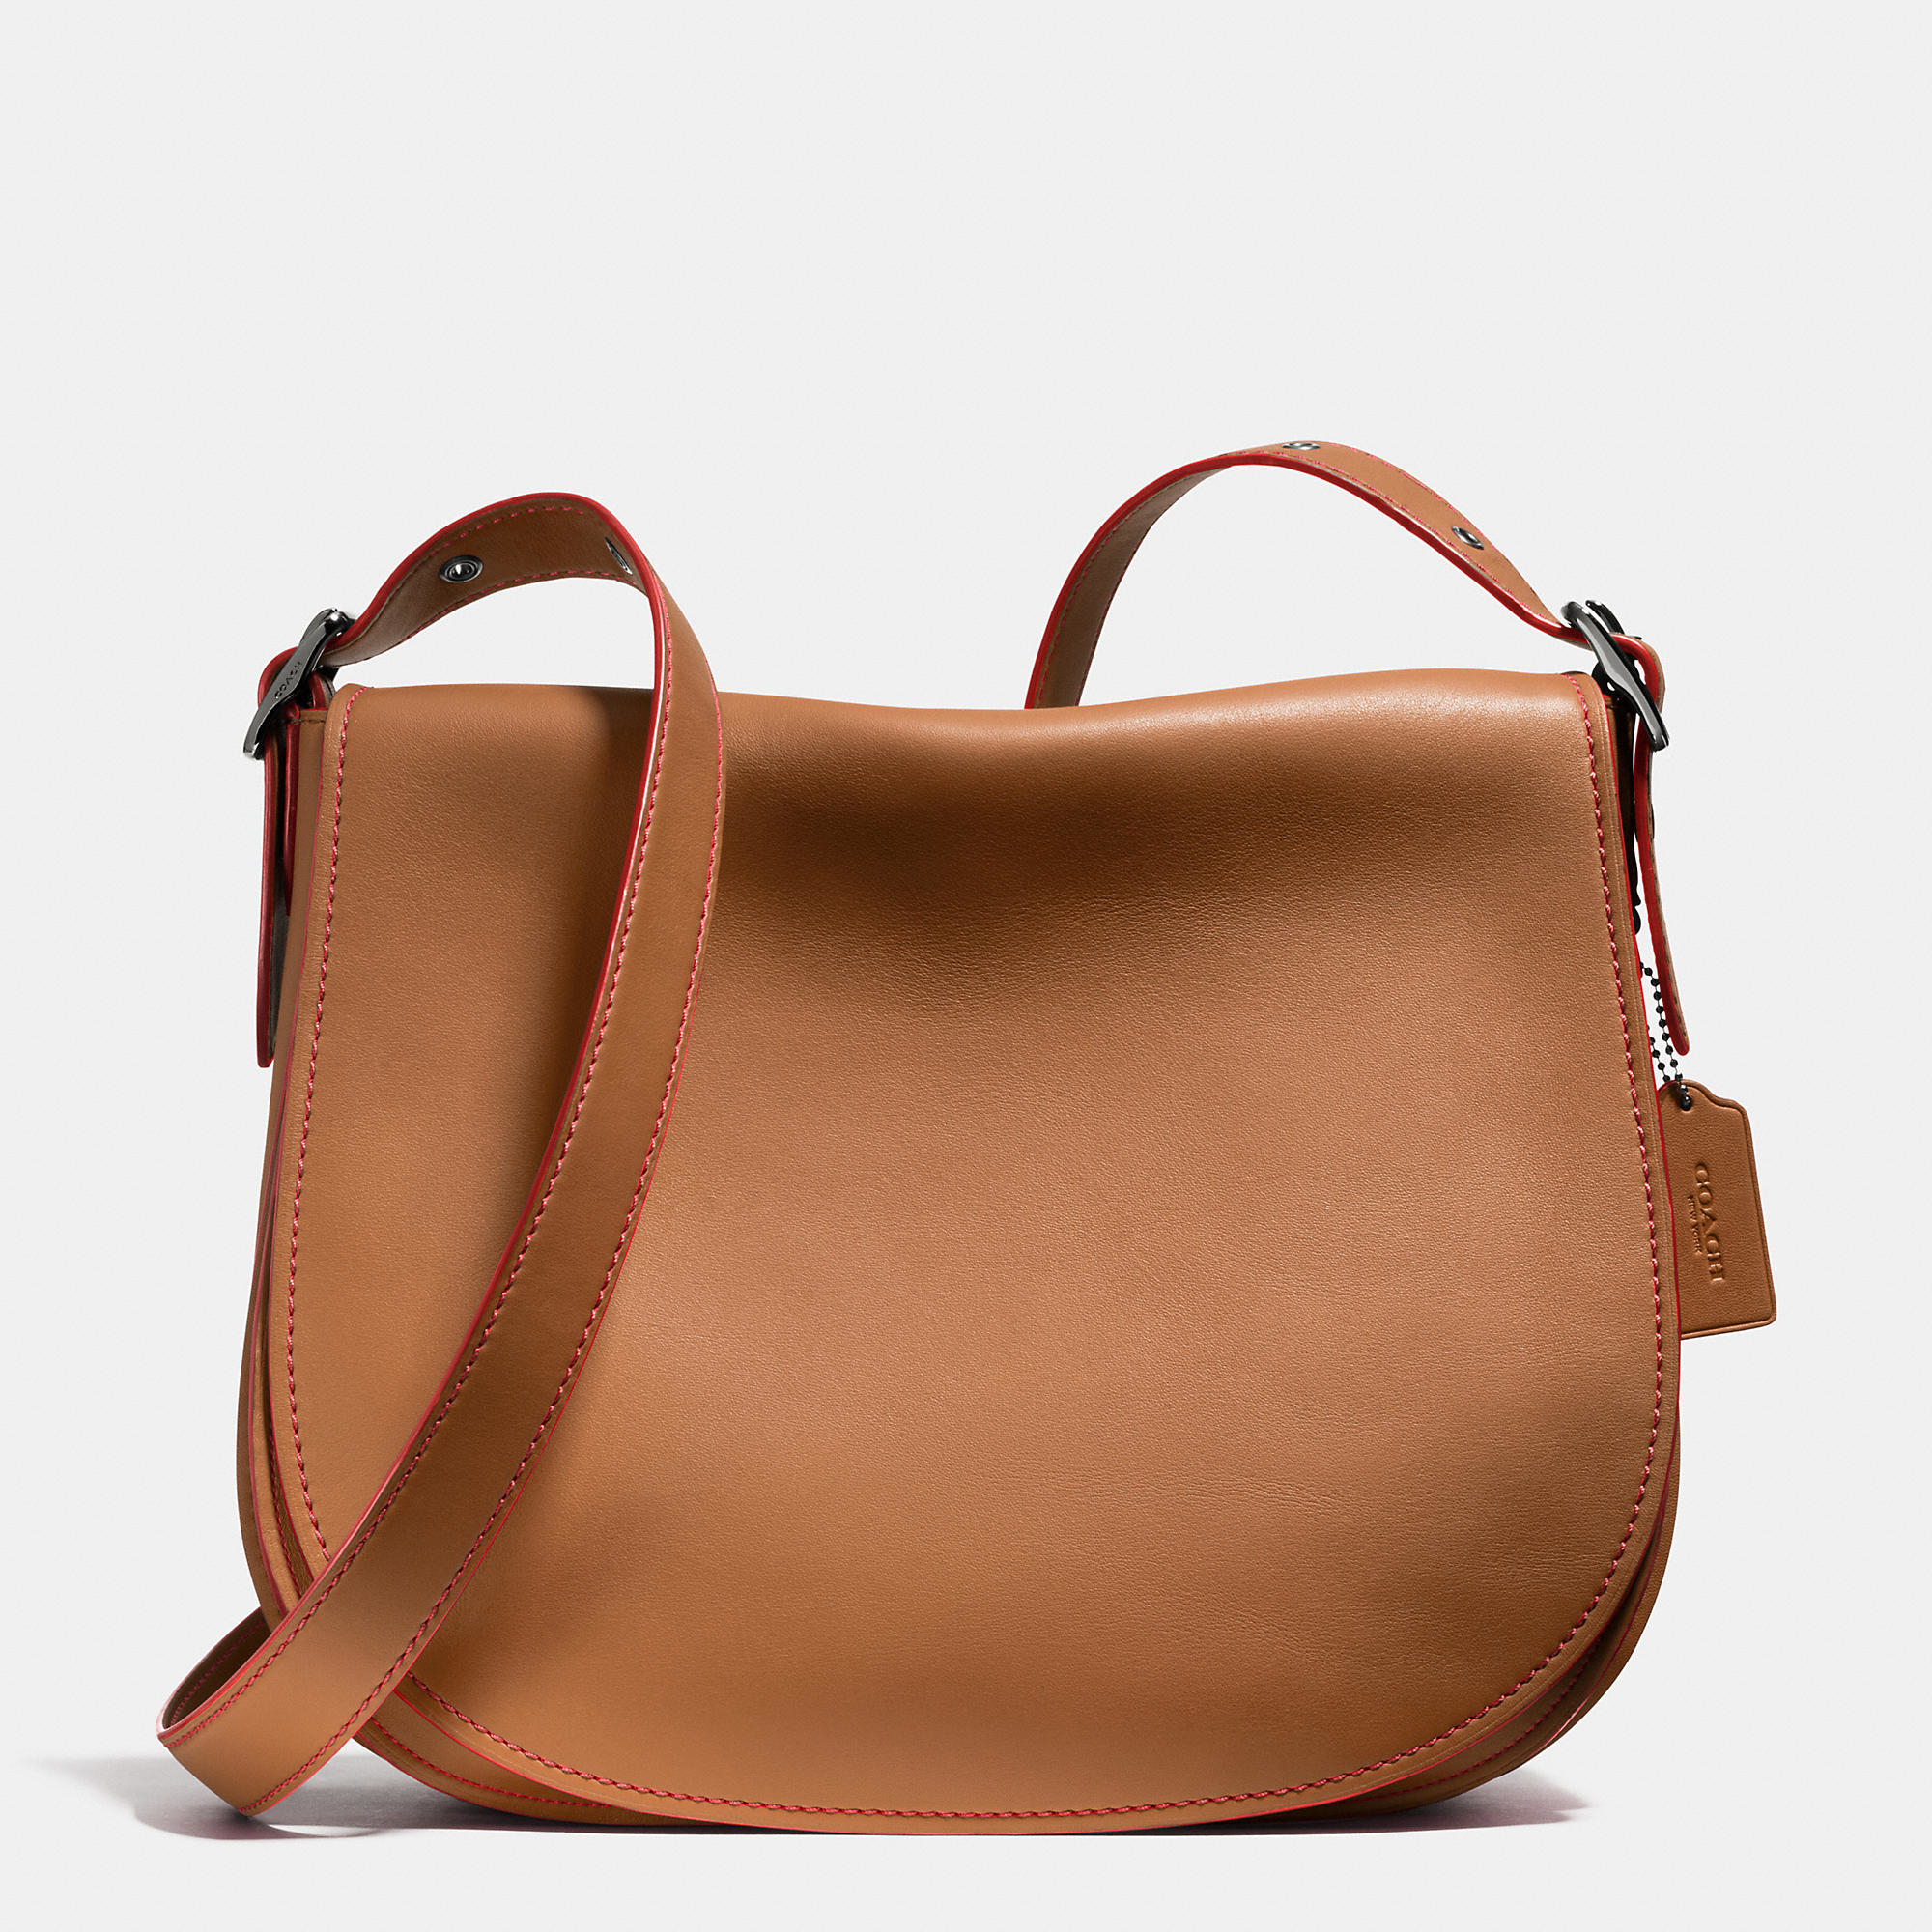 Coach Saddle Bag 35 In Glovetanned Leather in Brown | Lyst Saddle Bag